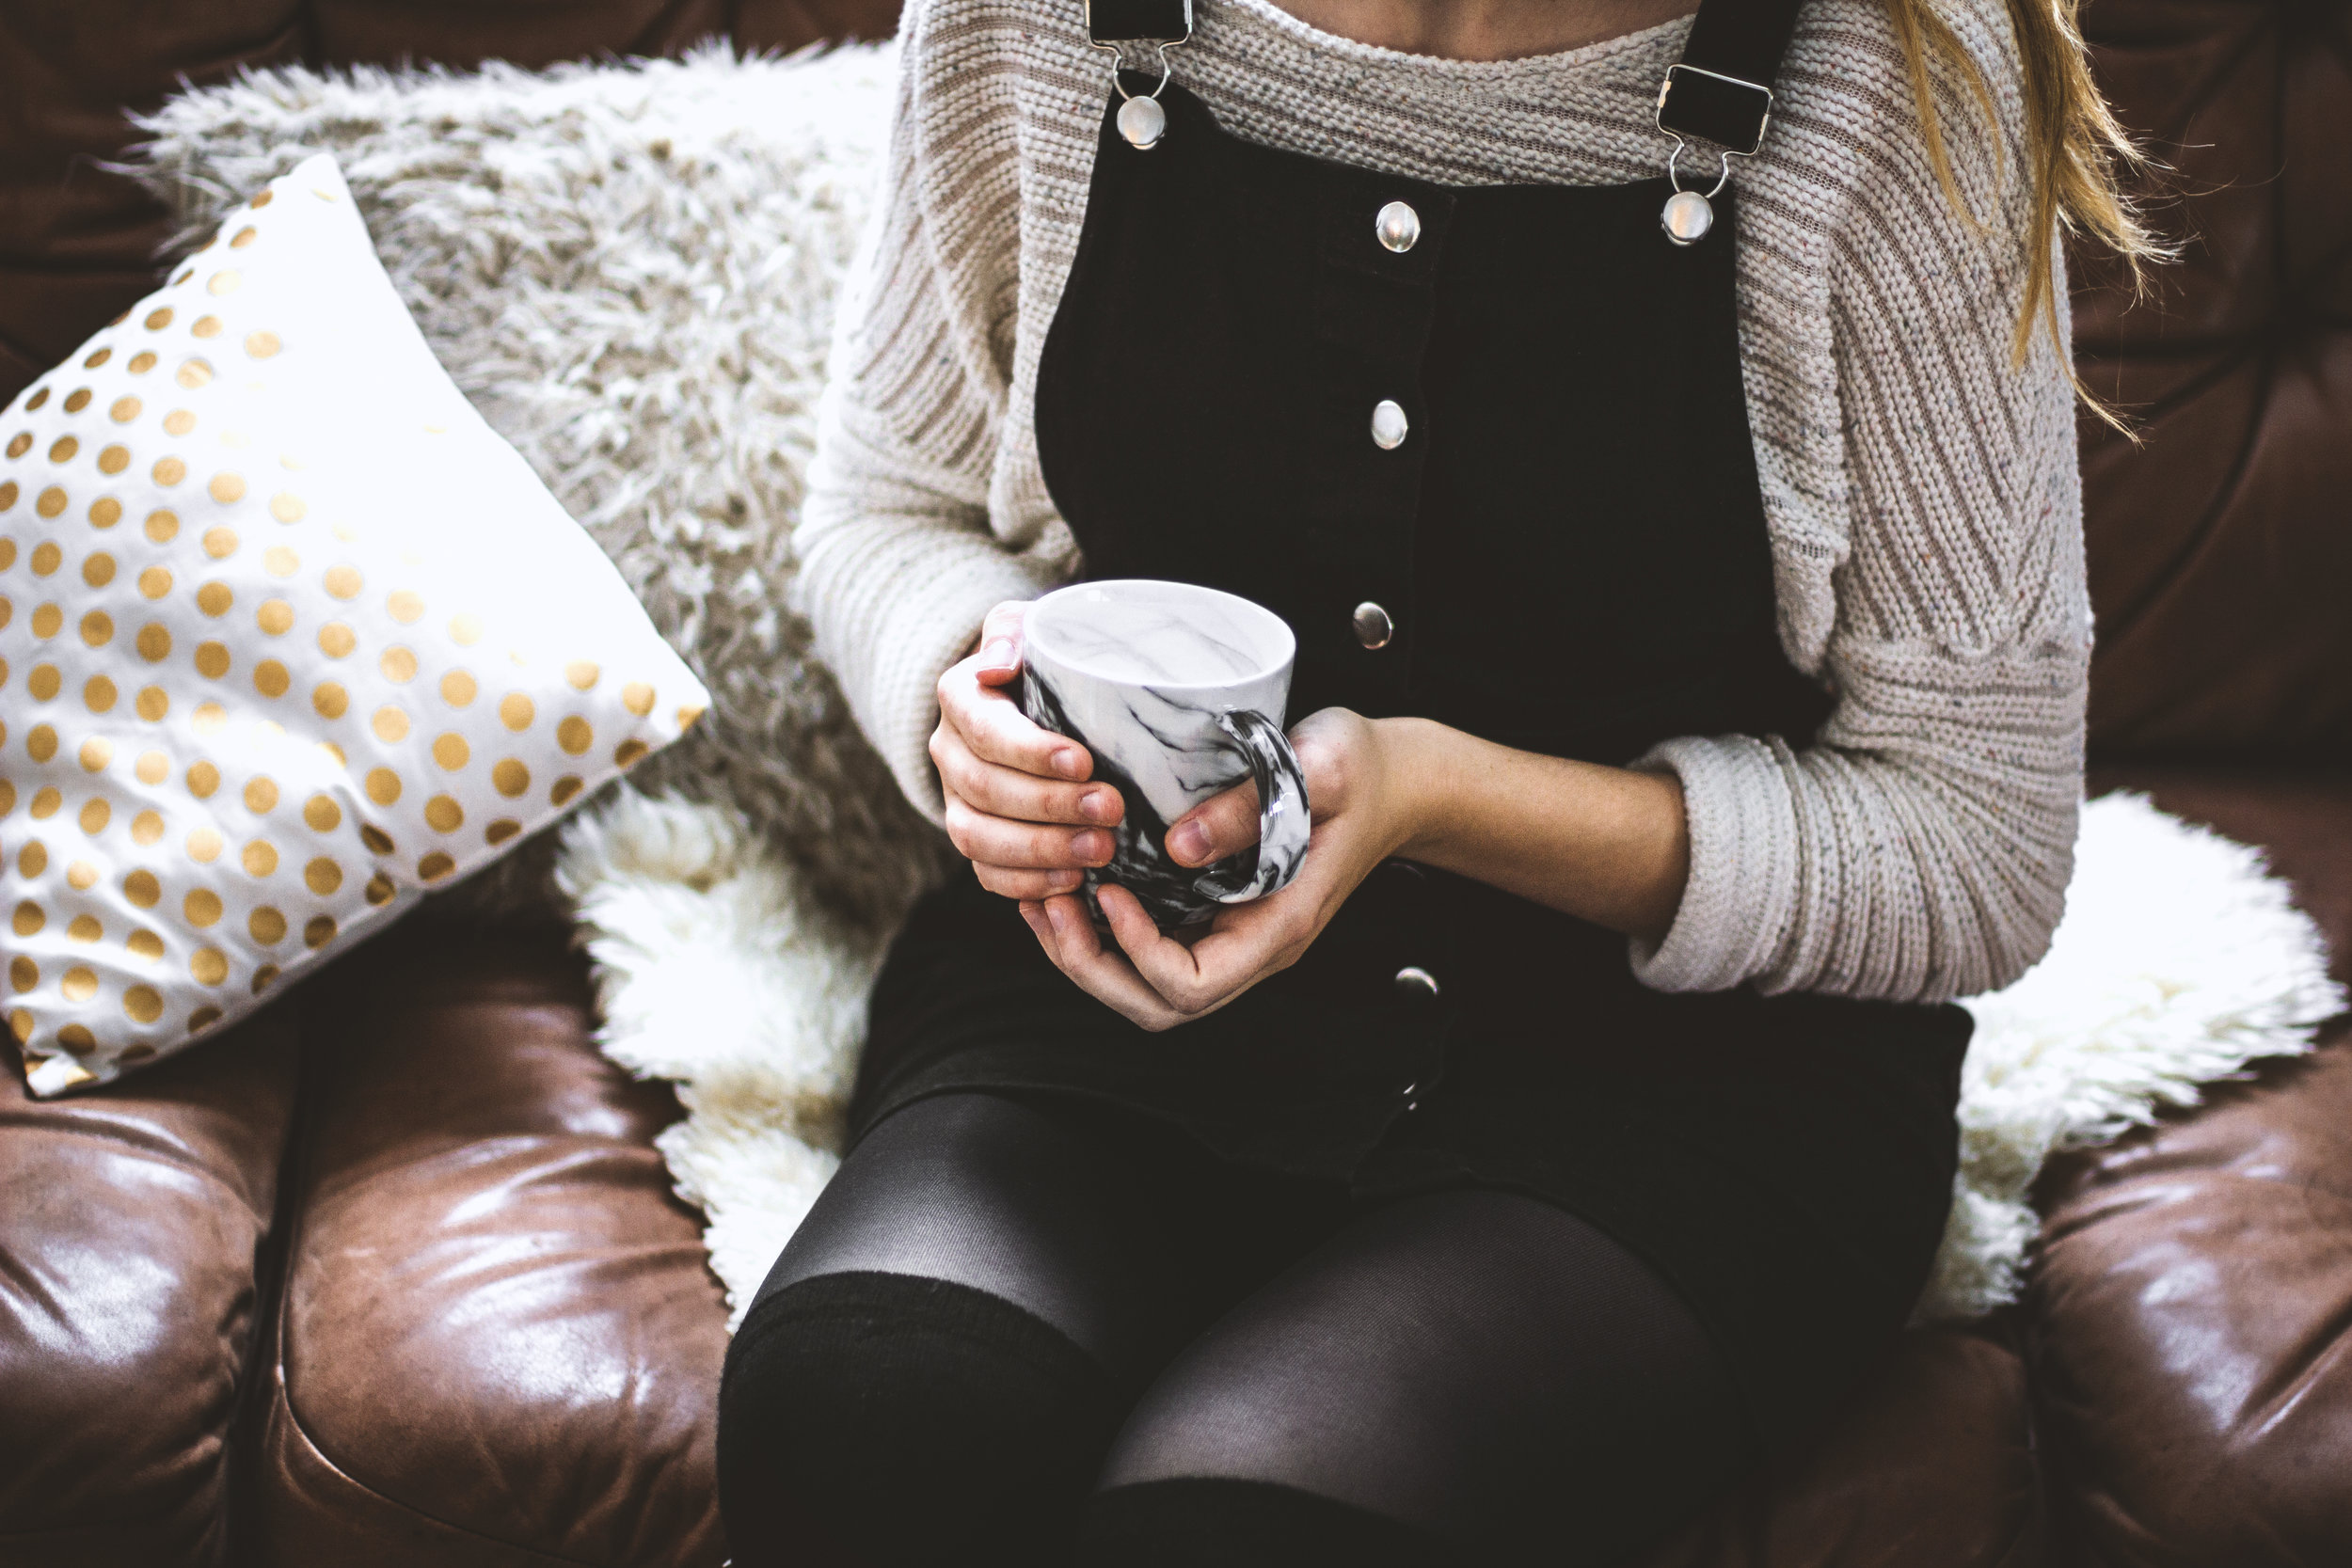 Can you still drink coffee while pregnant?